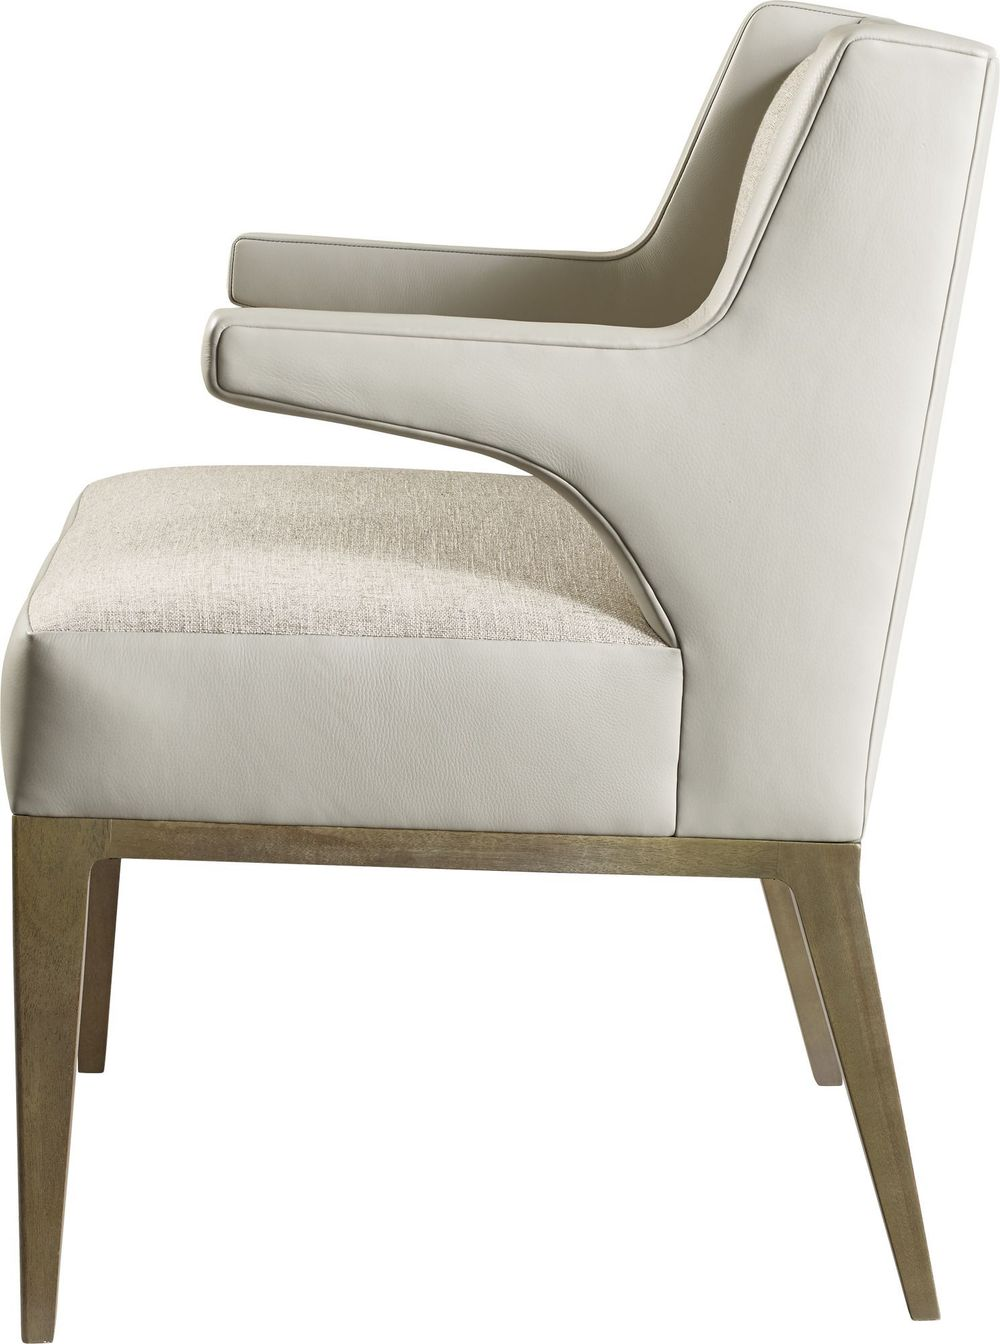 Baker Furniture - Kukio Arm Chair